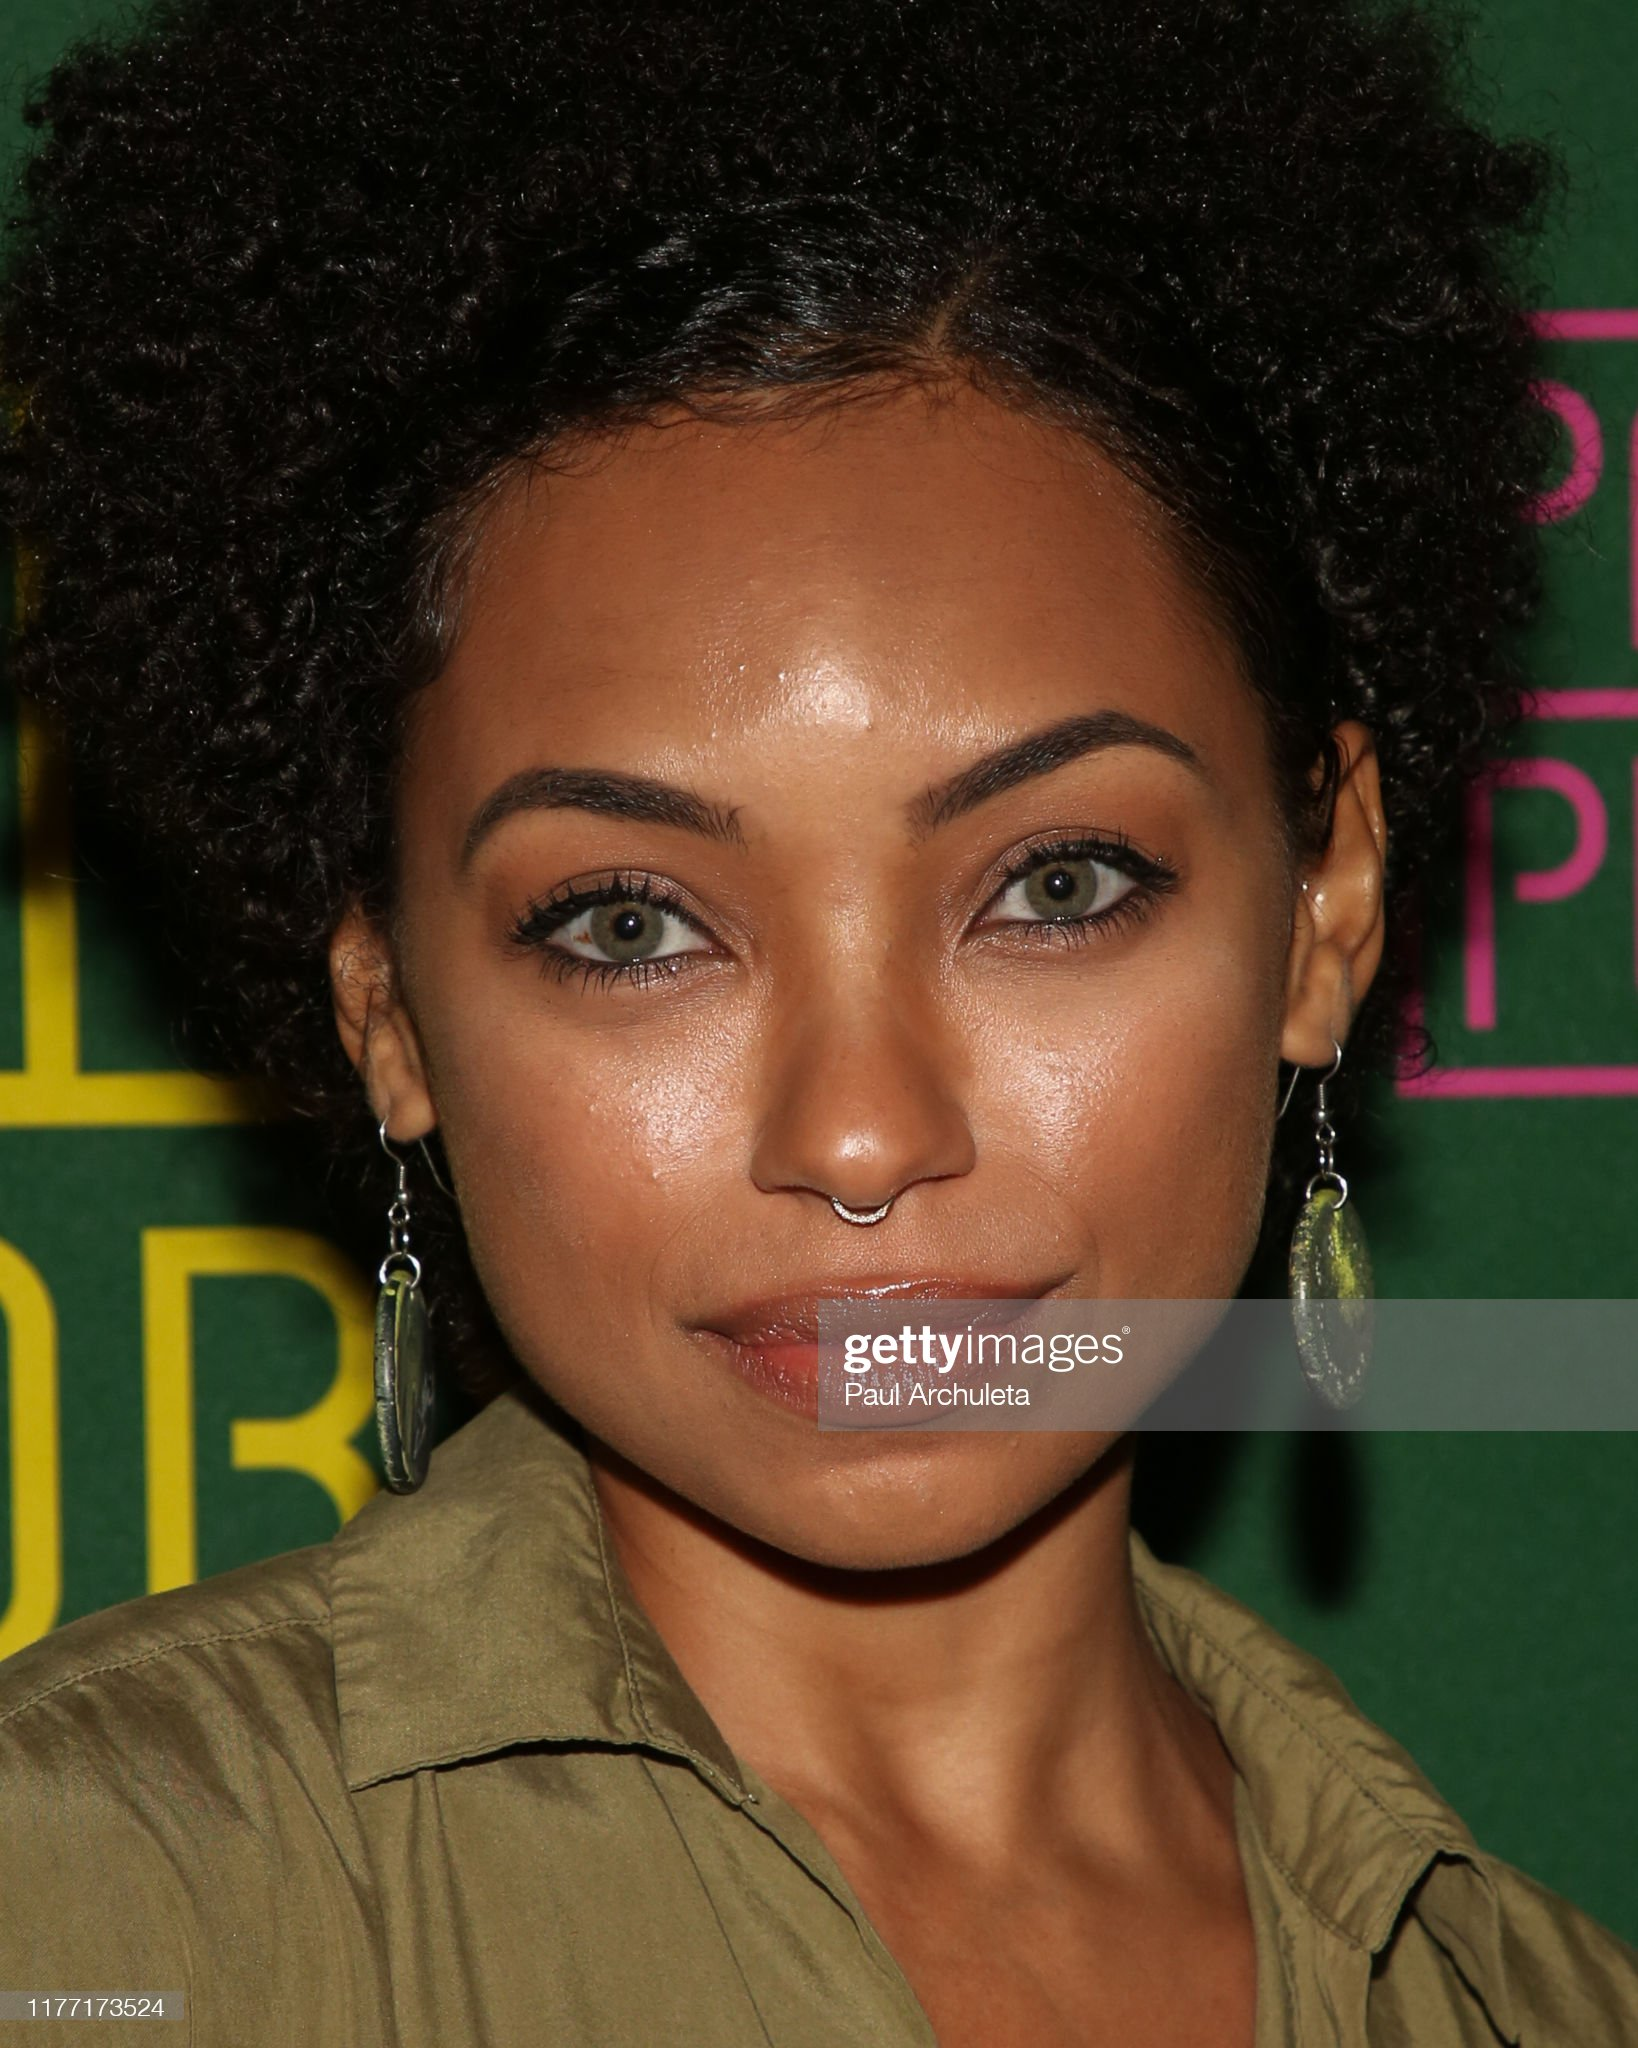 Ojos verdes - Famosas y famosos con los ojos de color VERDE Actress-logan-browning-attends-the-opening-night-of-little-shop-of-picture-id1177173524?s=2048x2048